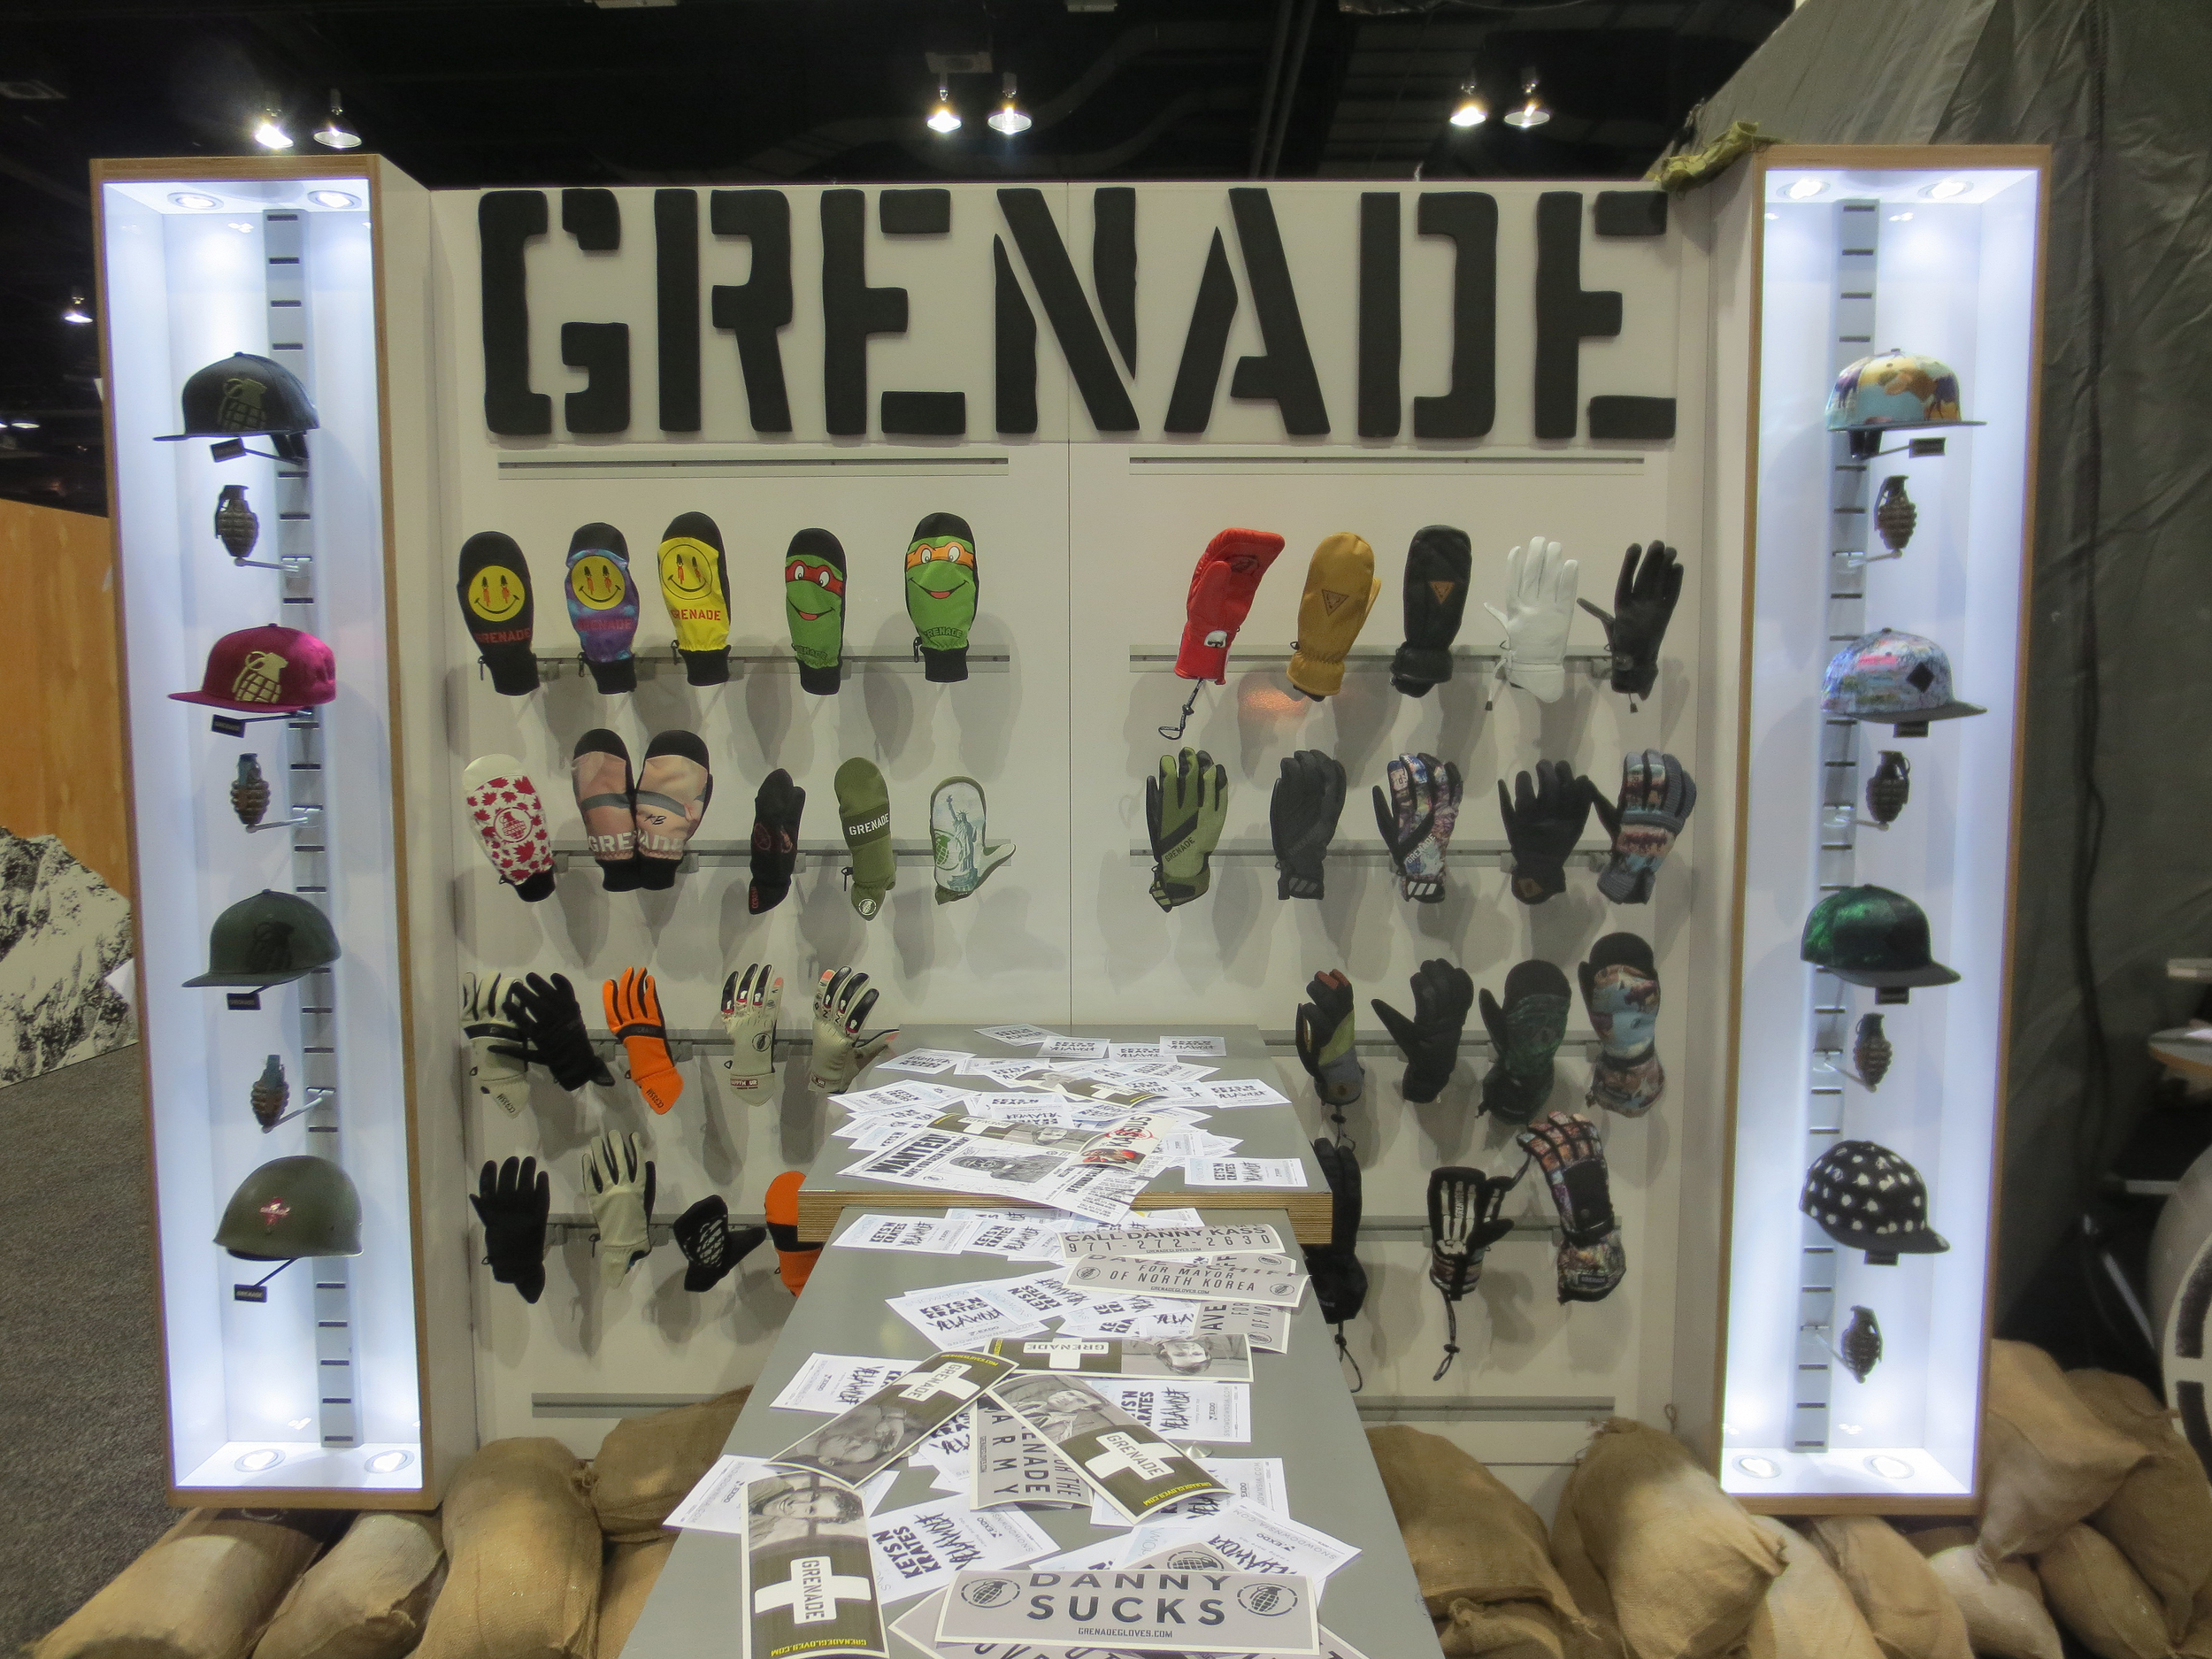 Grenade went full military on their booth, Danny Kass and company did it big.